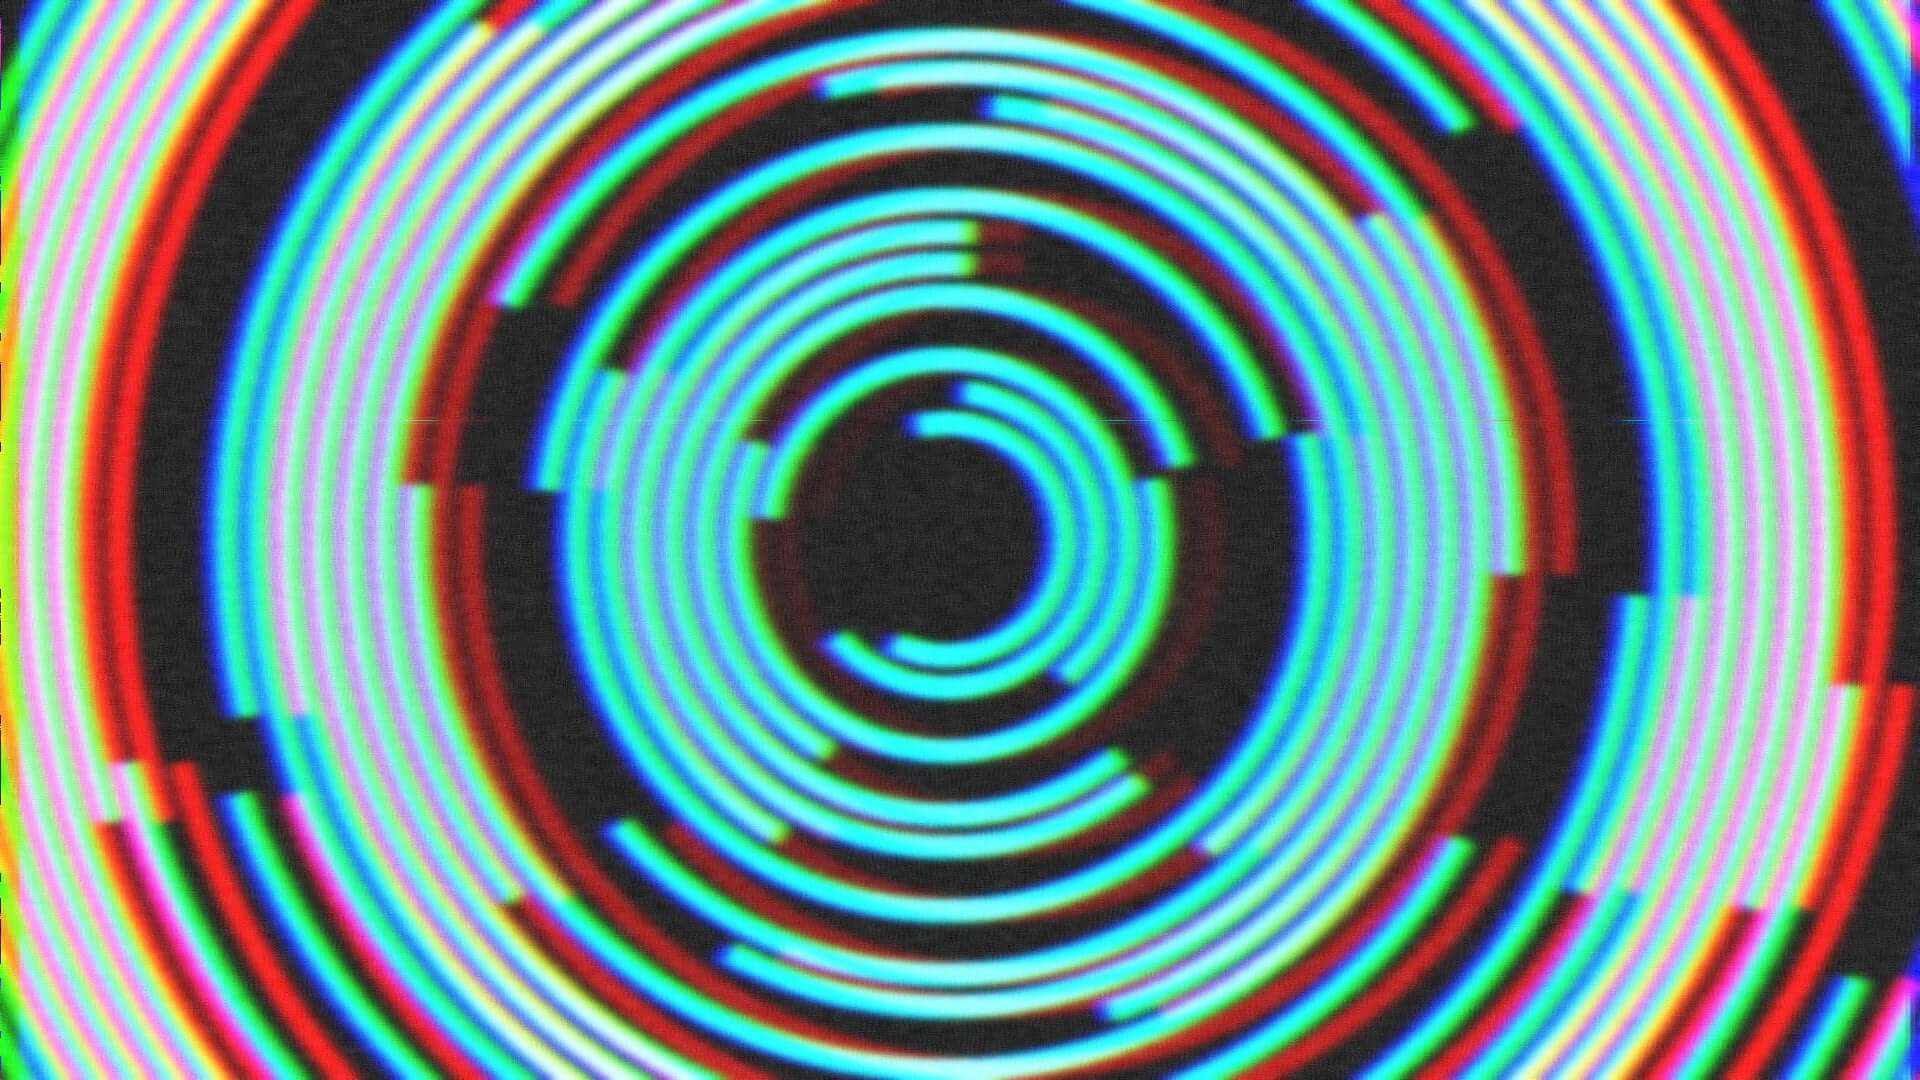 How to Create Audio Reactive VJ Loops with Generators in